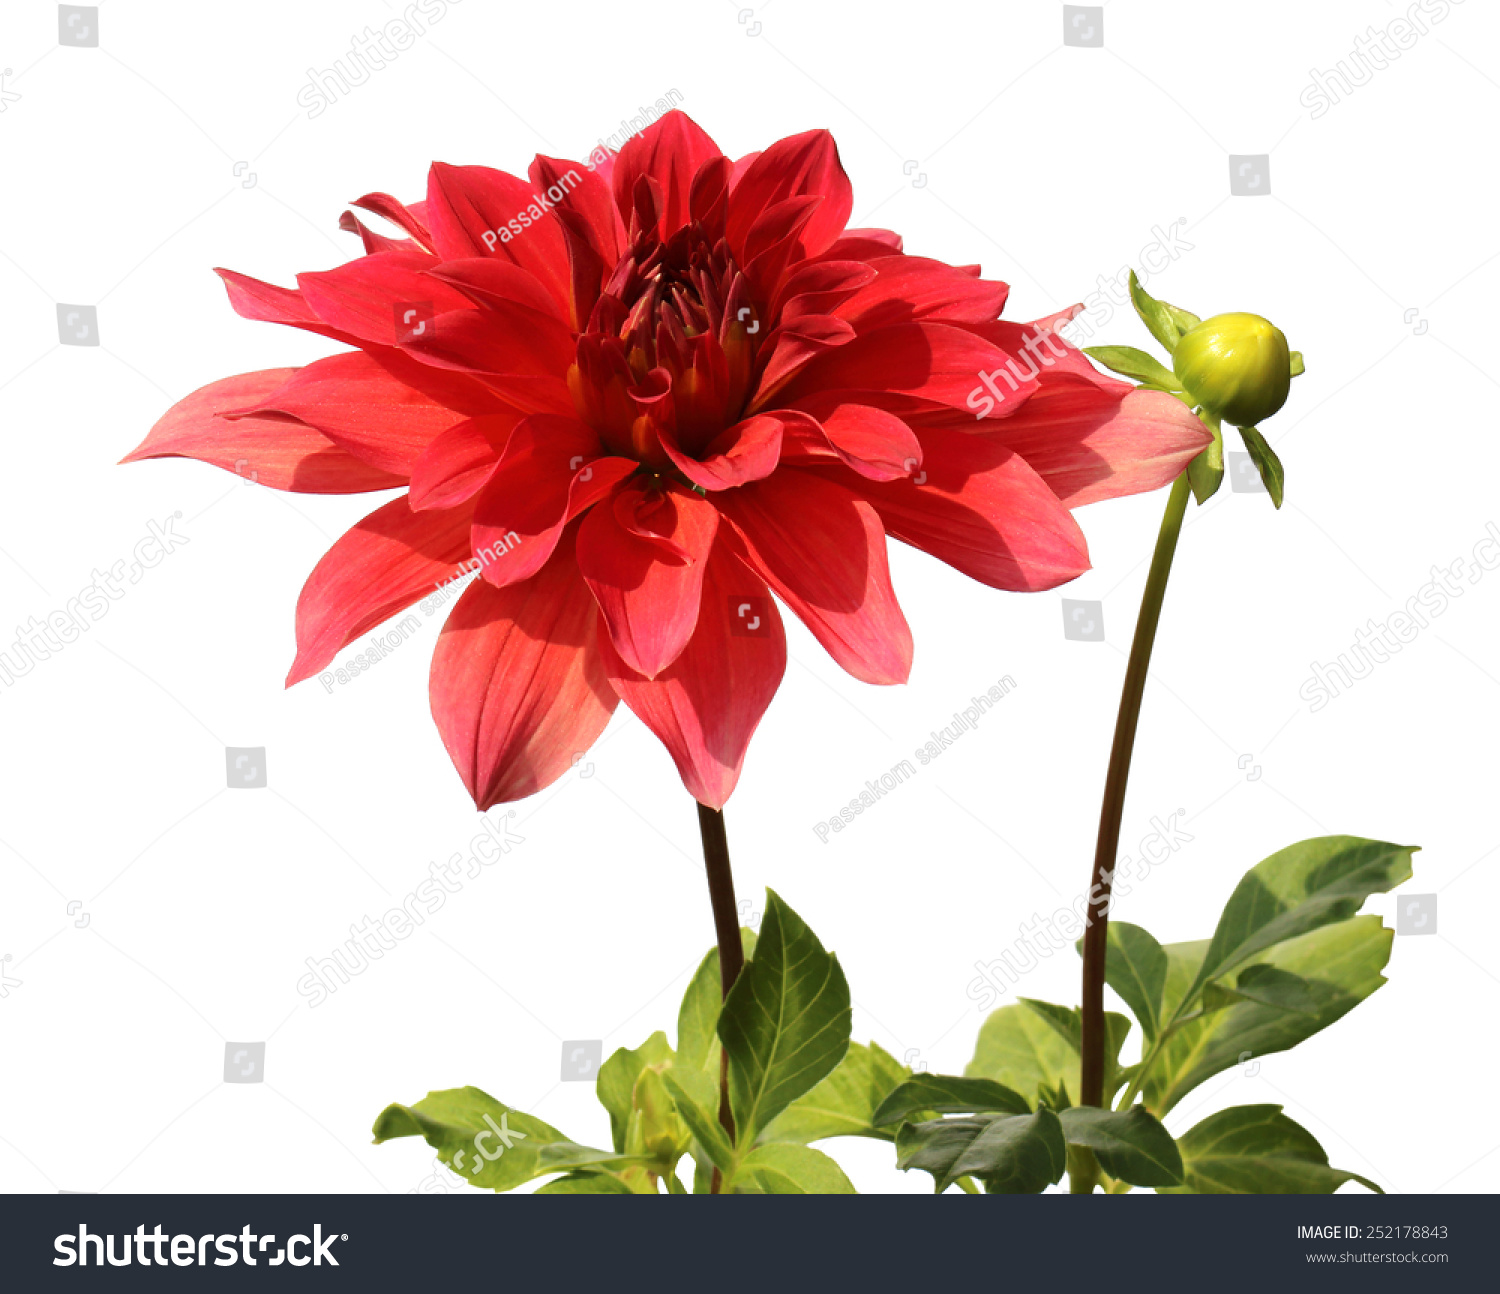 Red Dahlias Flower Plant Isolated On White Background Ez Canvas